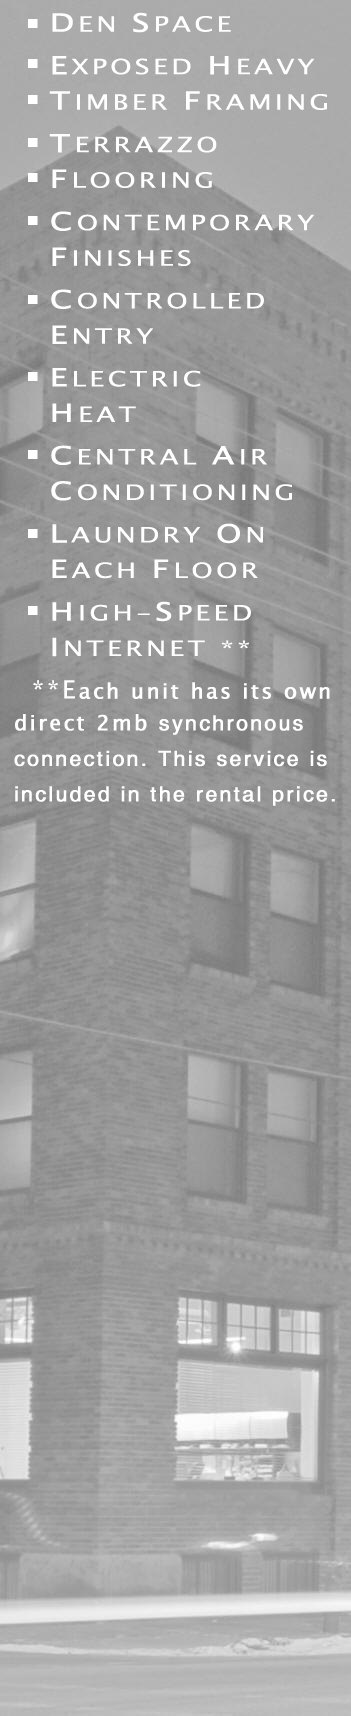 Description: I:\Bristol Place Website\sidebar.jpg